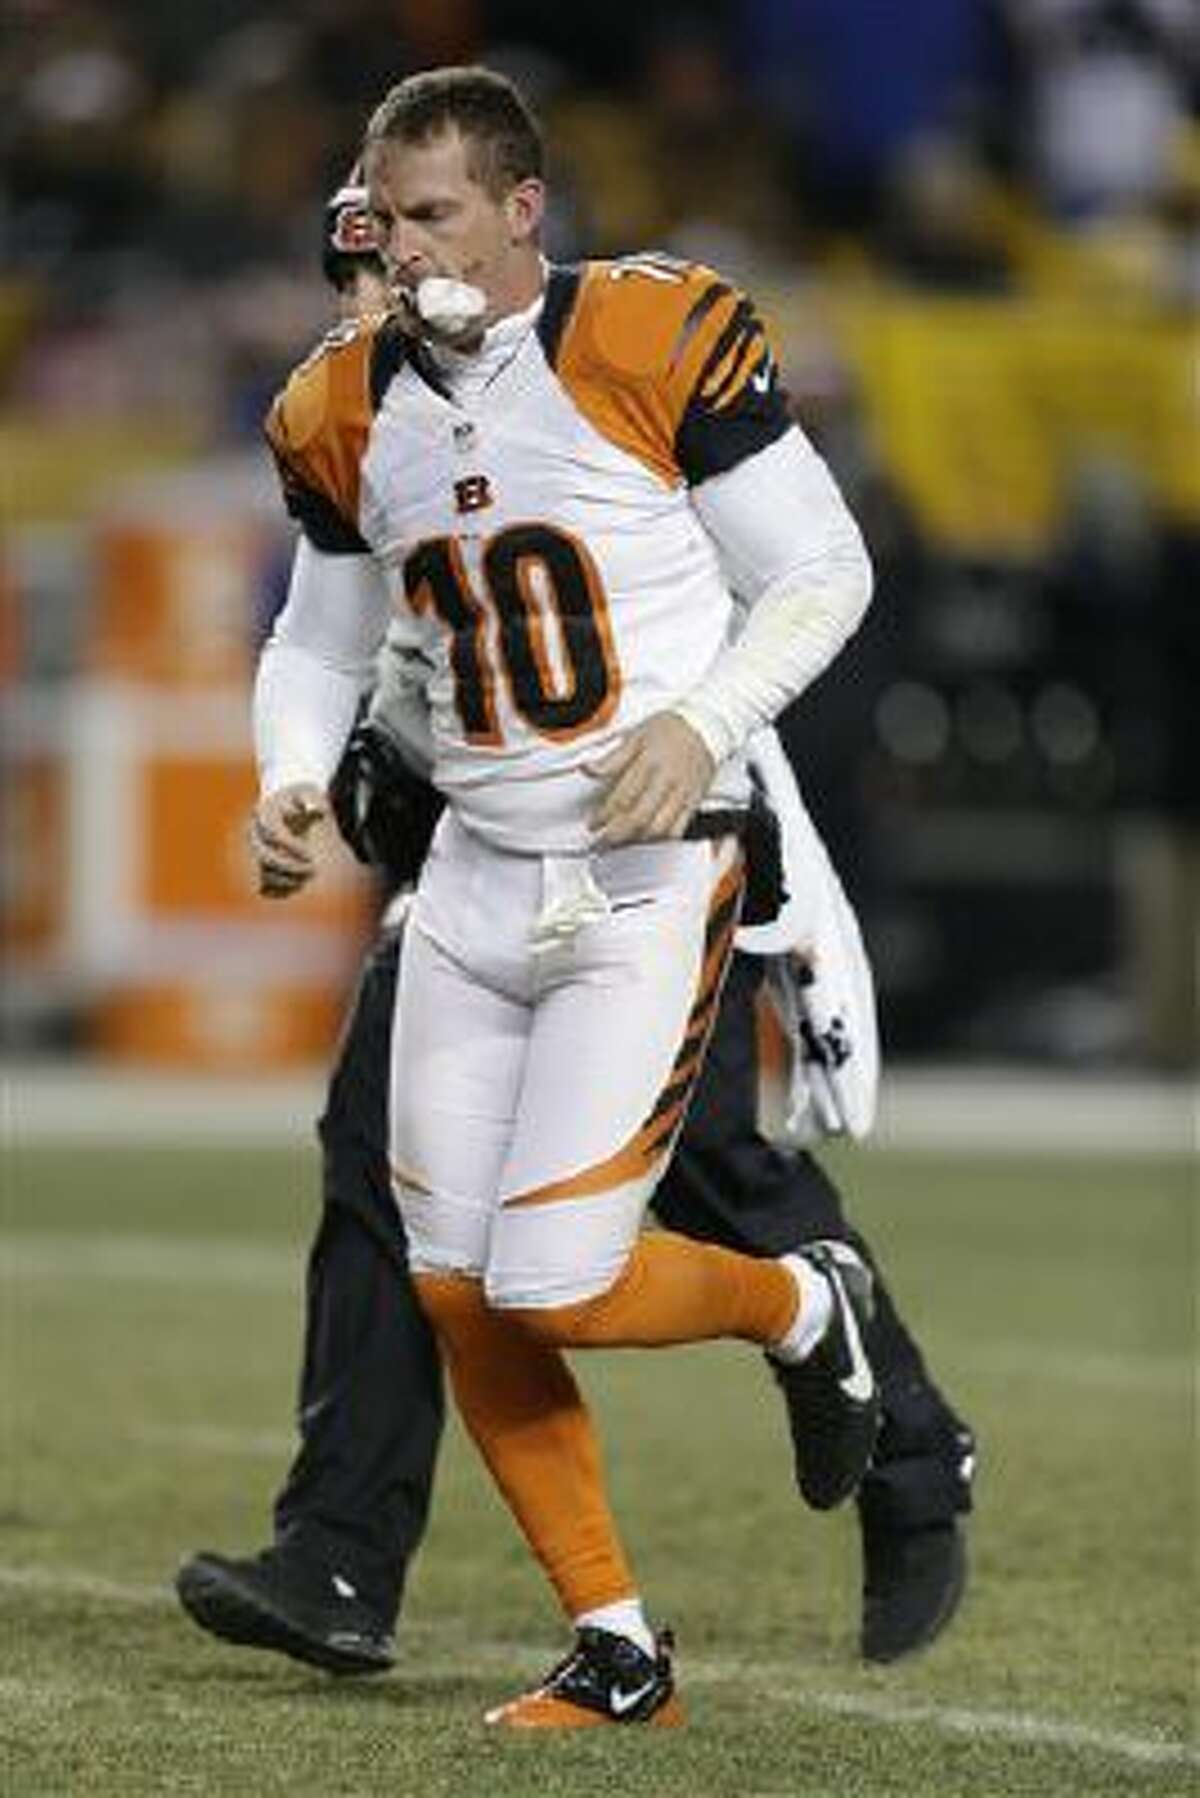 Cincinnati Bengals punter Kevin Huber (10) is taken from the field after being injured in the first half of an NFL football game between the Pittsburgh Steelers and the Cincinnati Bengals on Sunday, Dec. 15, 2013 in Pittsburgh.